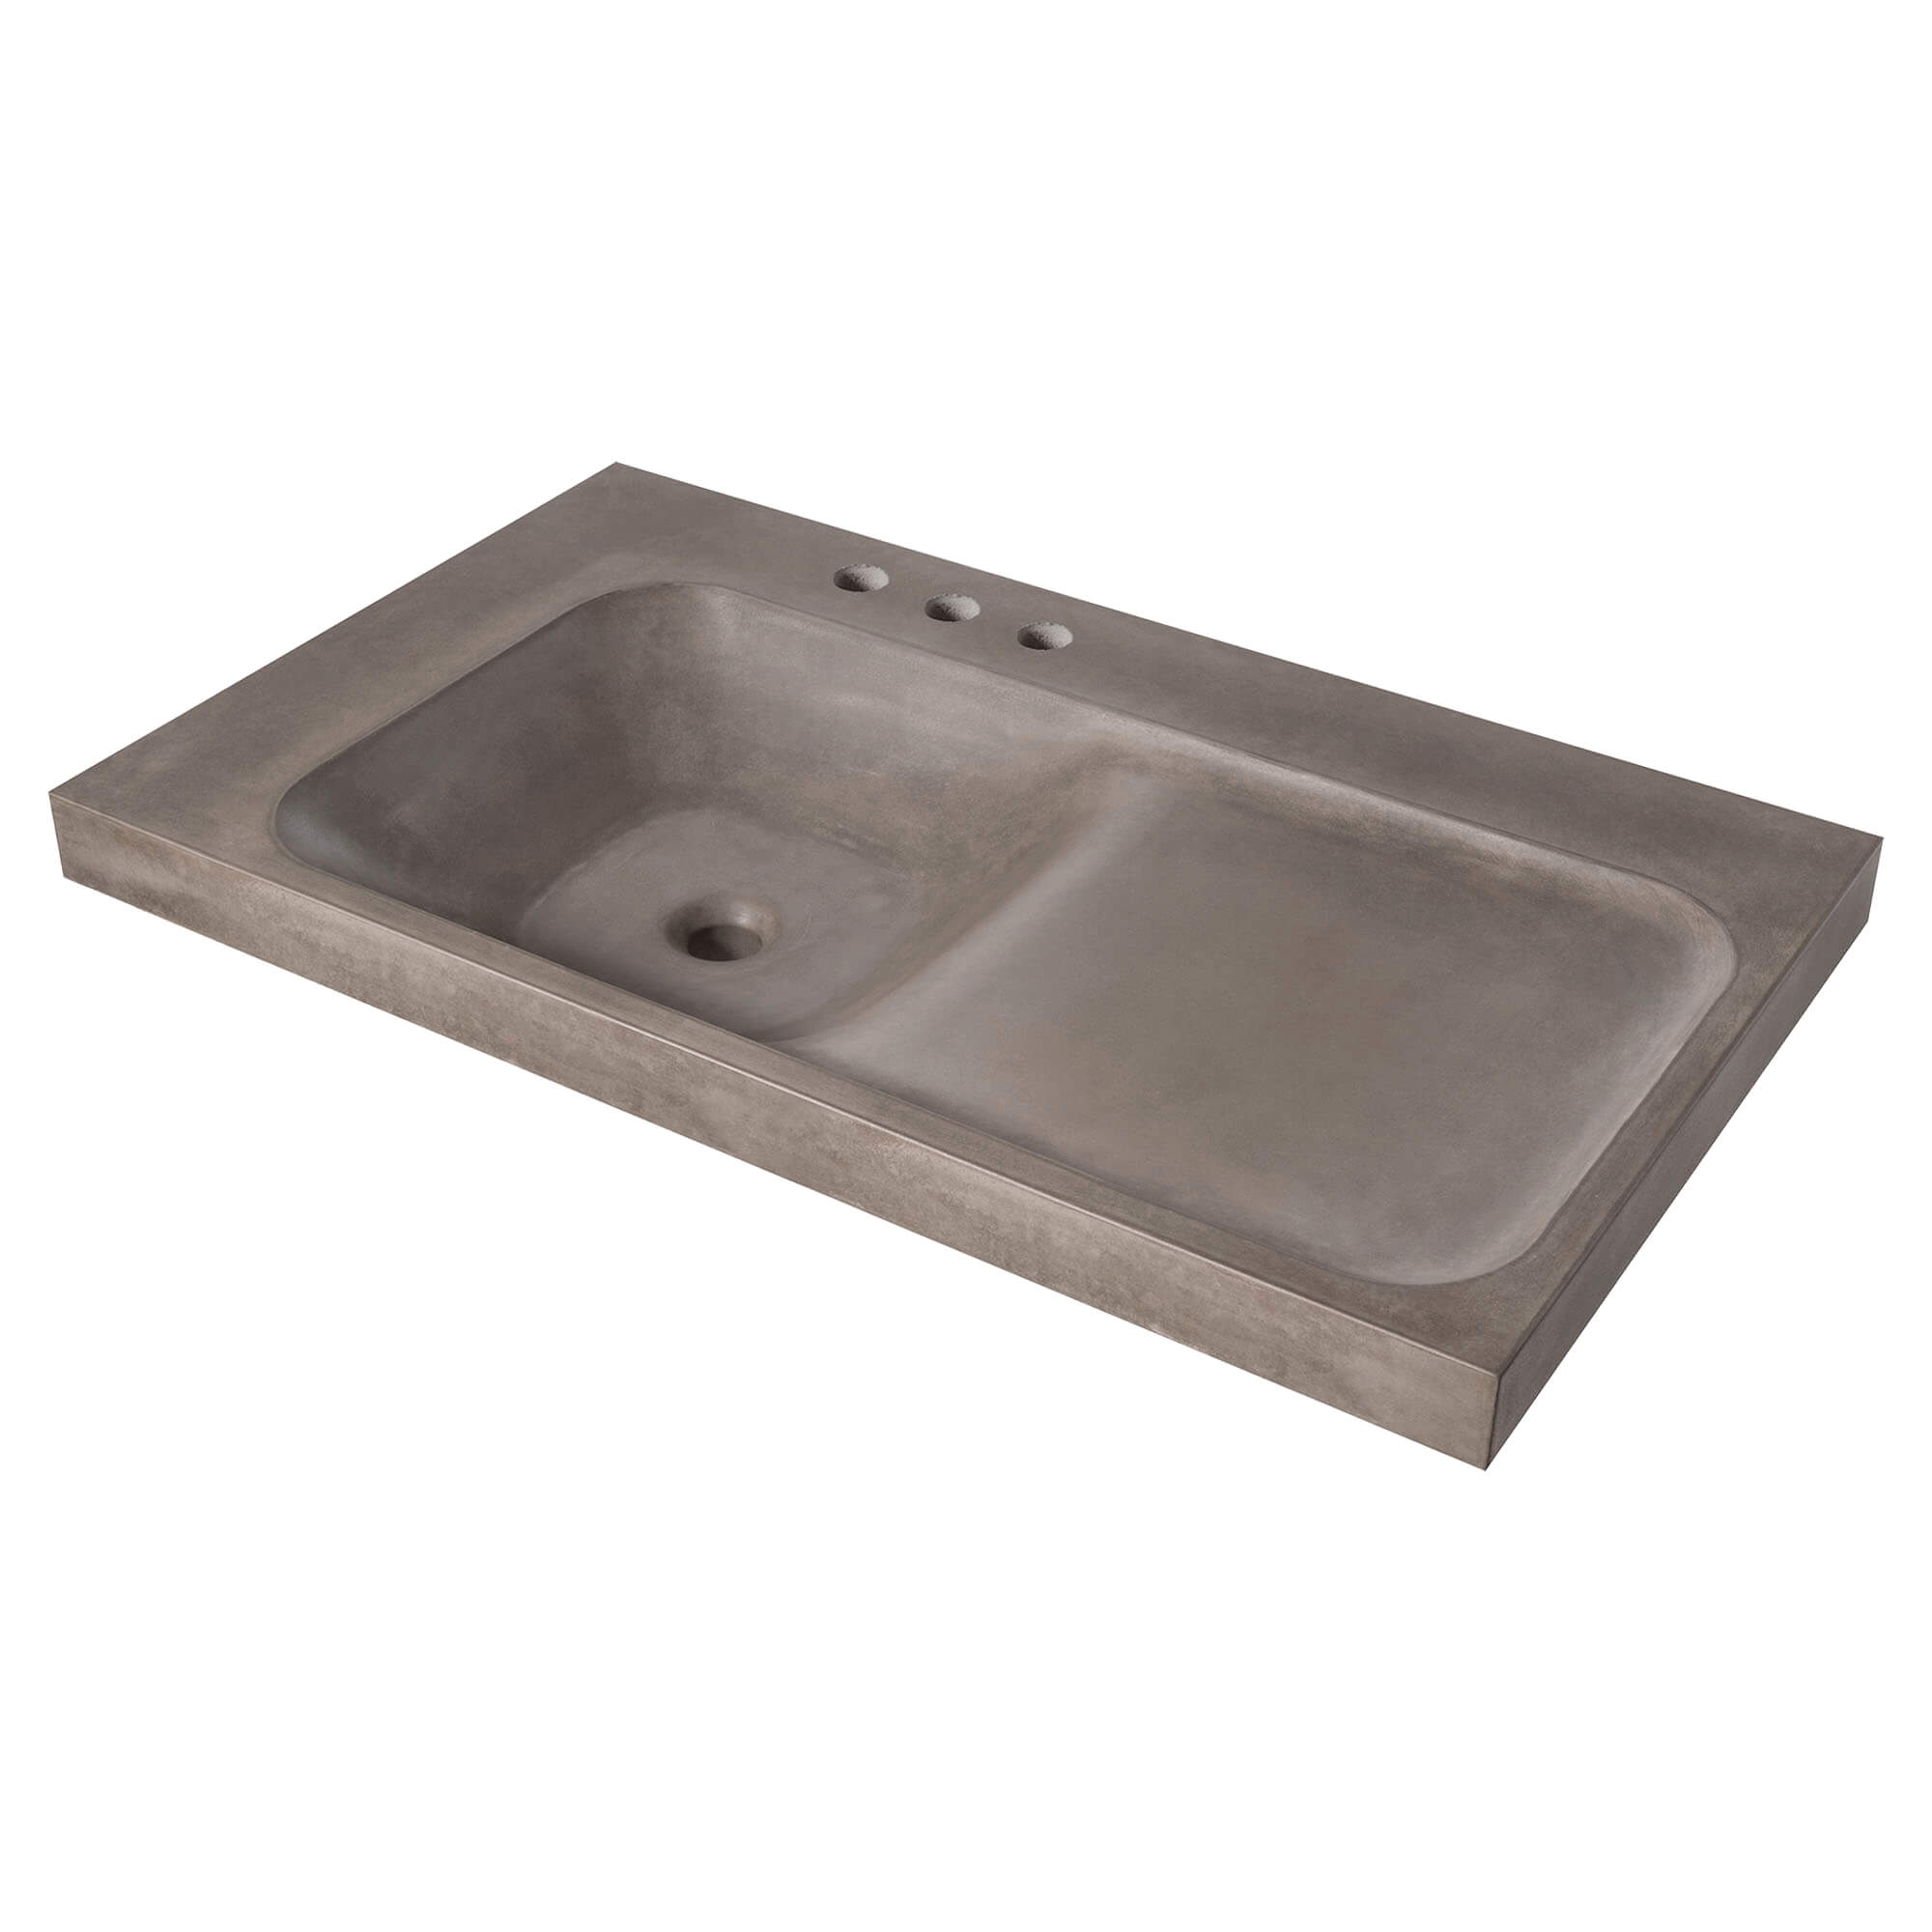 DXV Modulus 36-inch Three-Hole Concrete Bathroom Sink